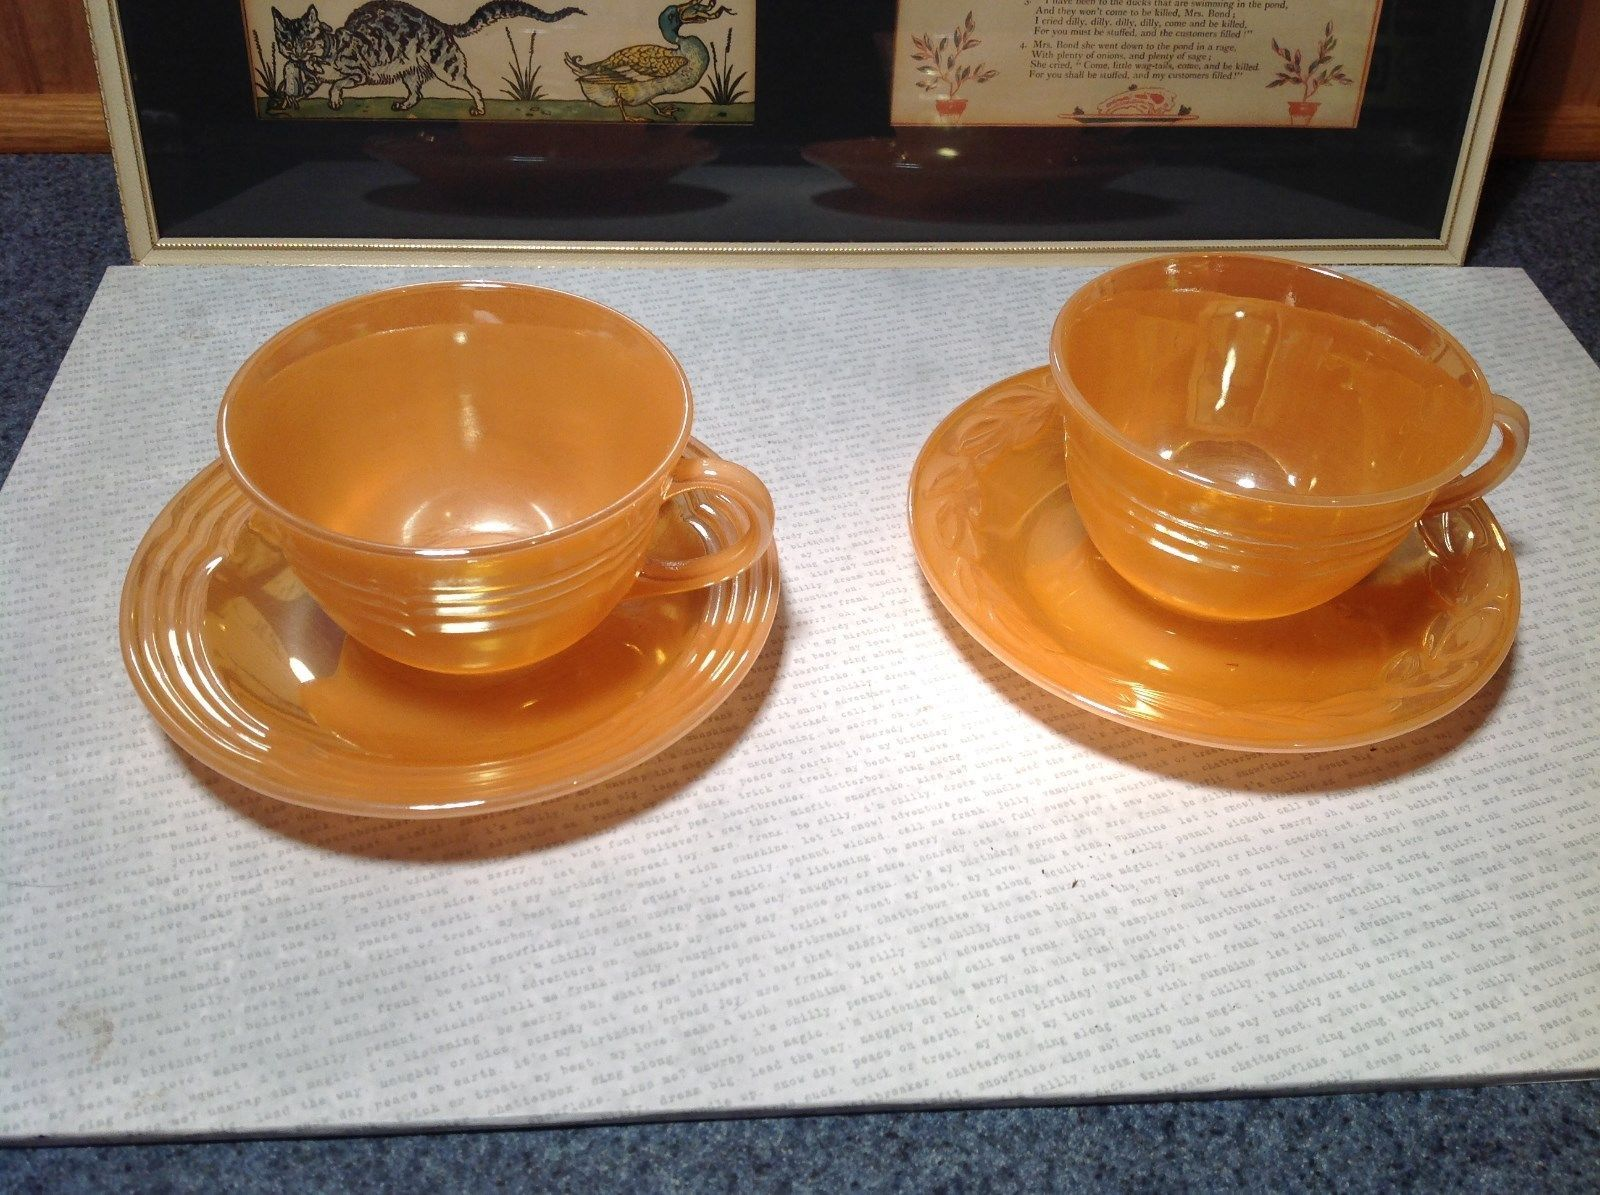 Four Piece Set of Cups and Saucers Made in USA Peach Colored The King Oven Ware